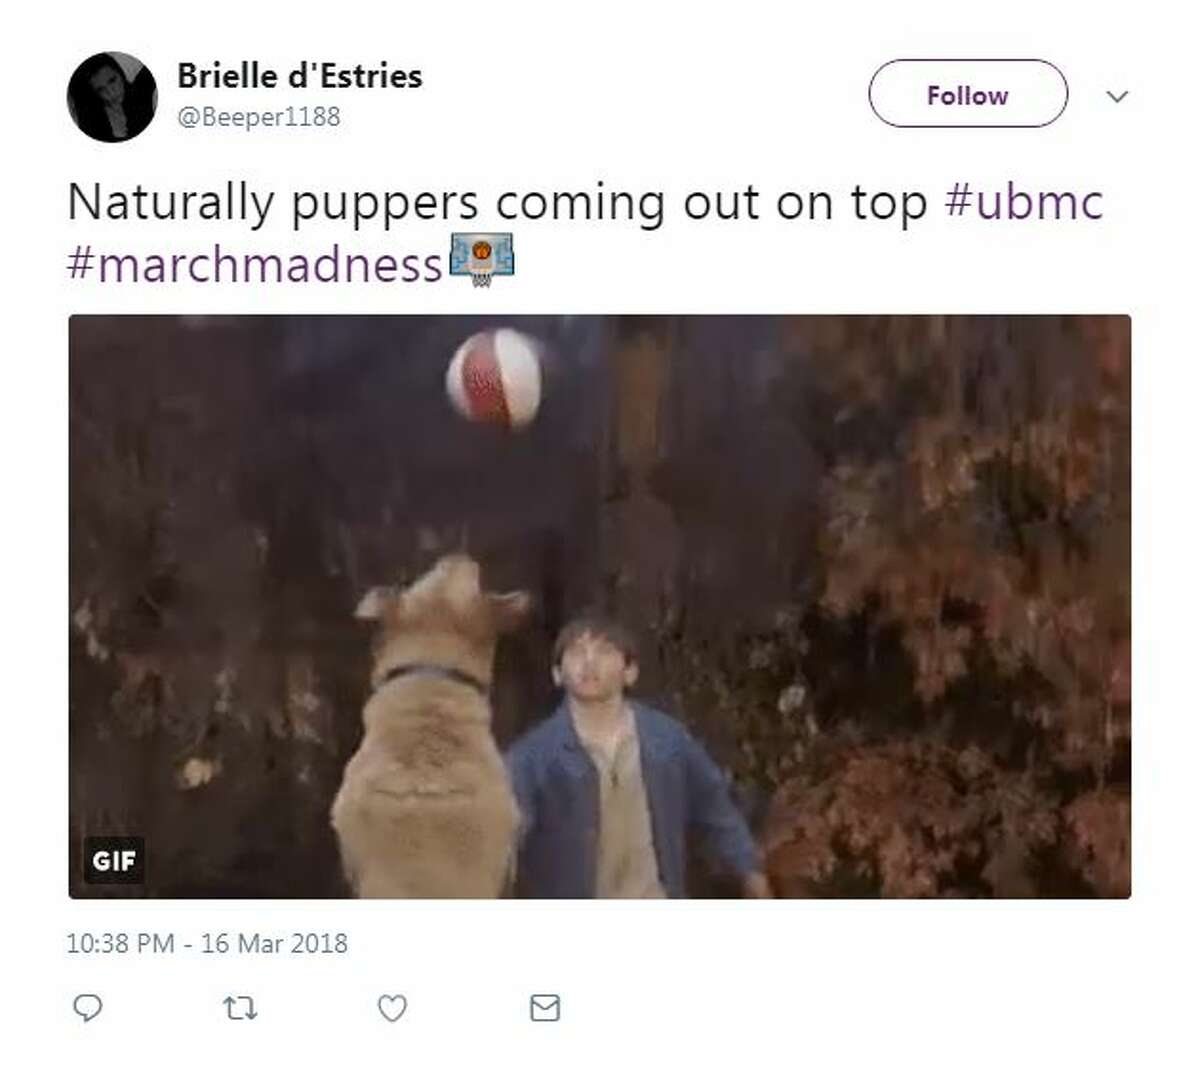 Naturally puppers coming out on top